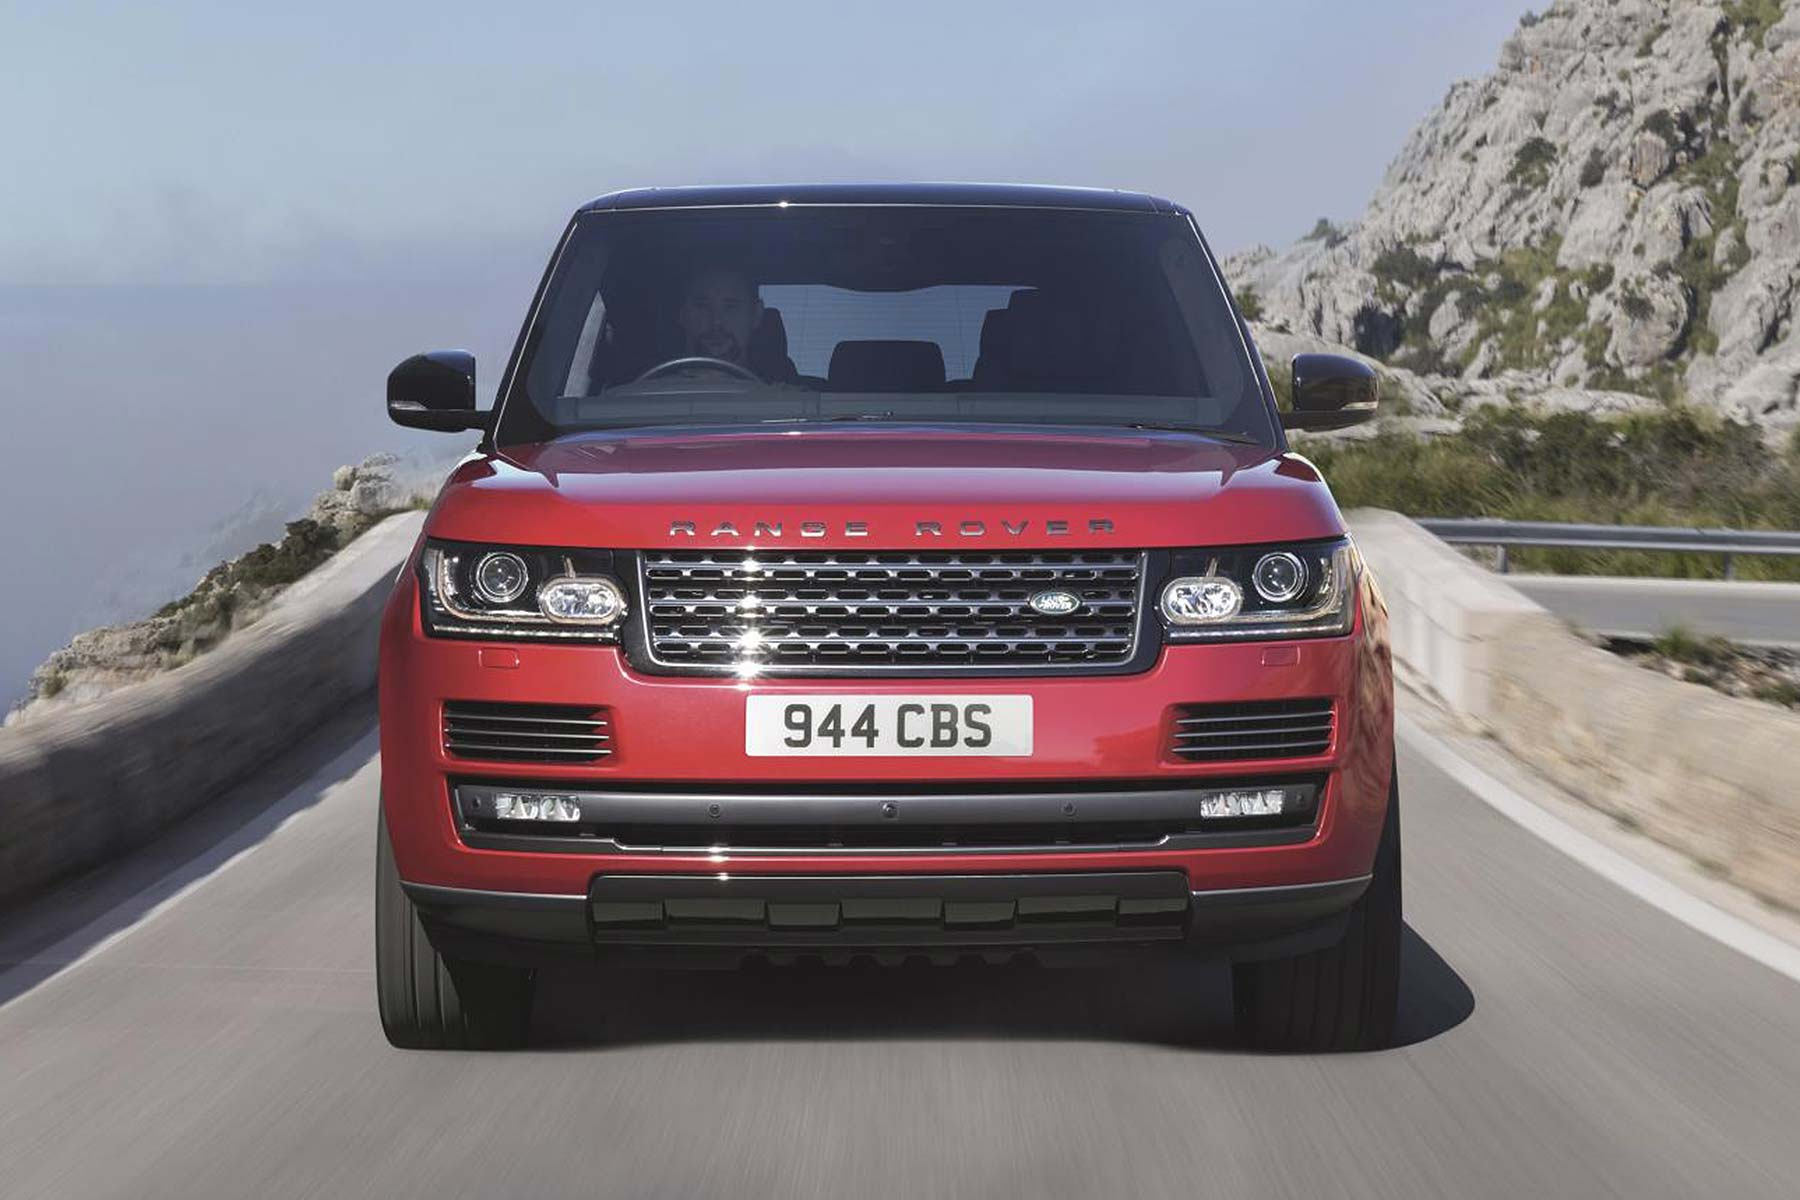 2017 range rover svautobiography dynamic 39 most powerful ever 39 motoring research. Black Bedroom Furniture Sets. Home Design Ideas